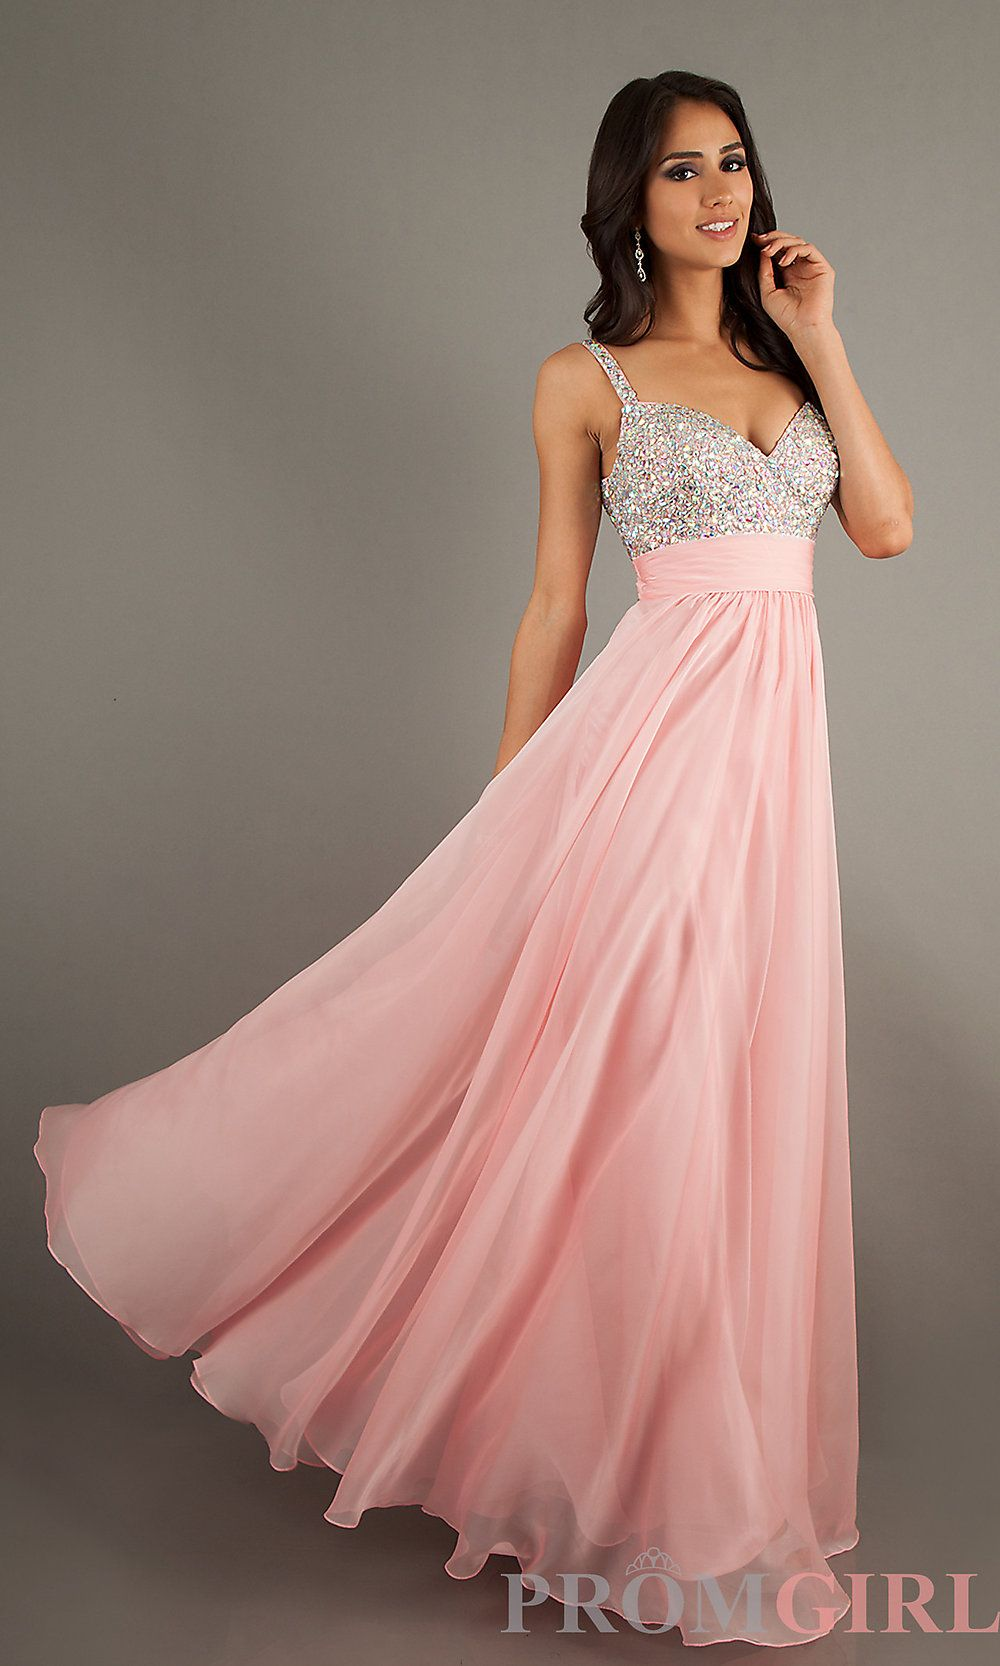 Cute long prom dresses promgirl